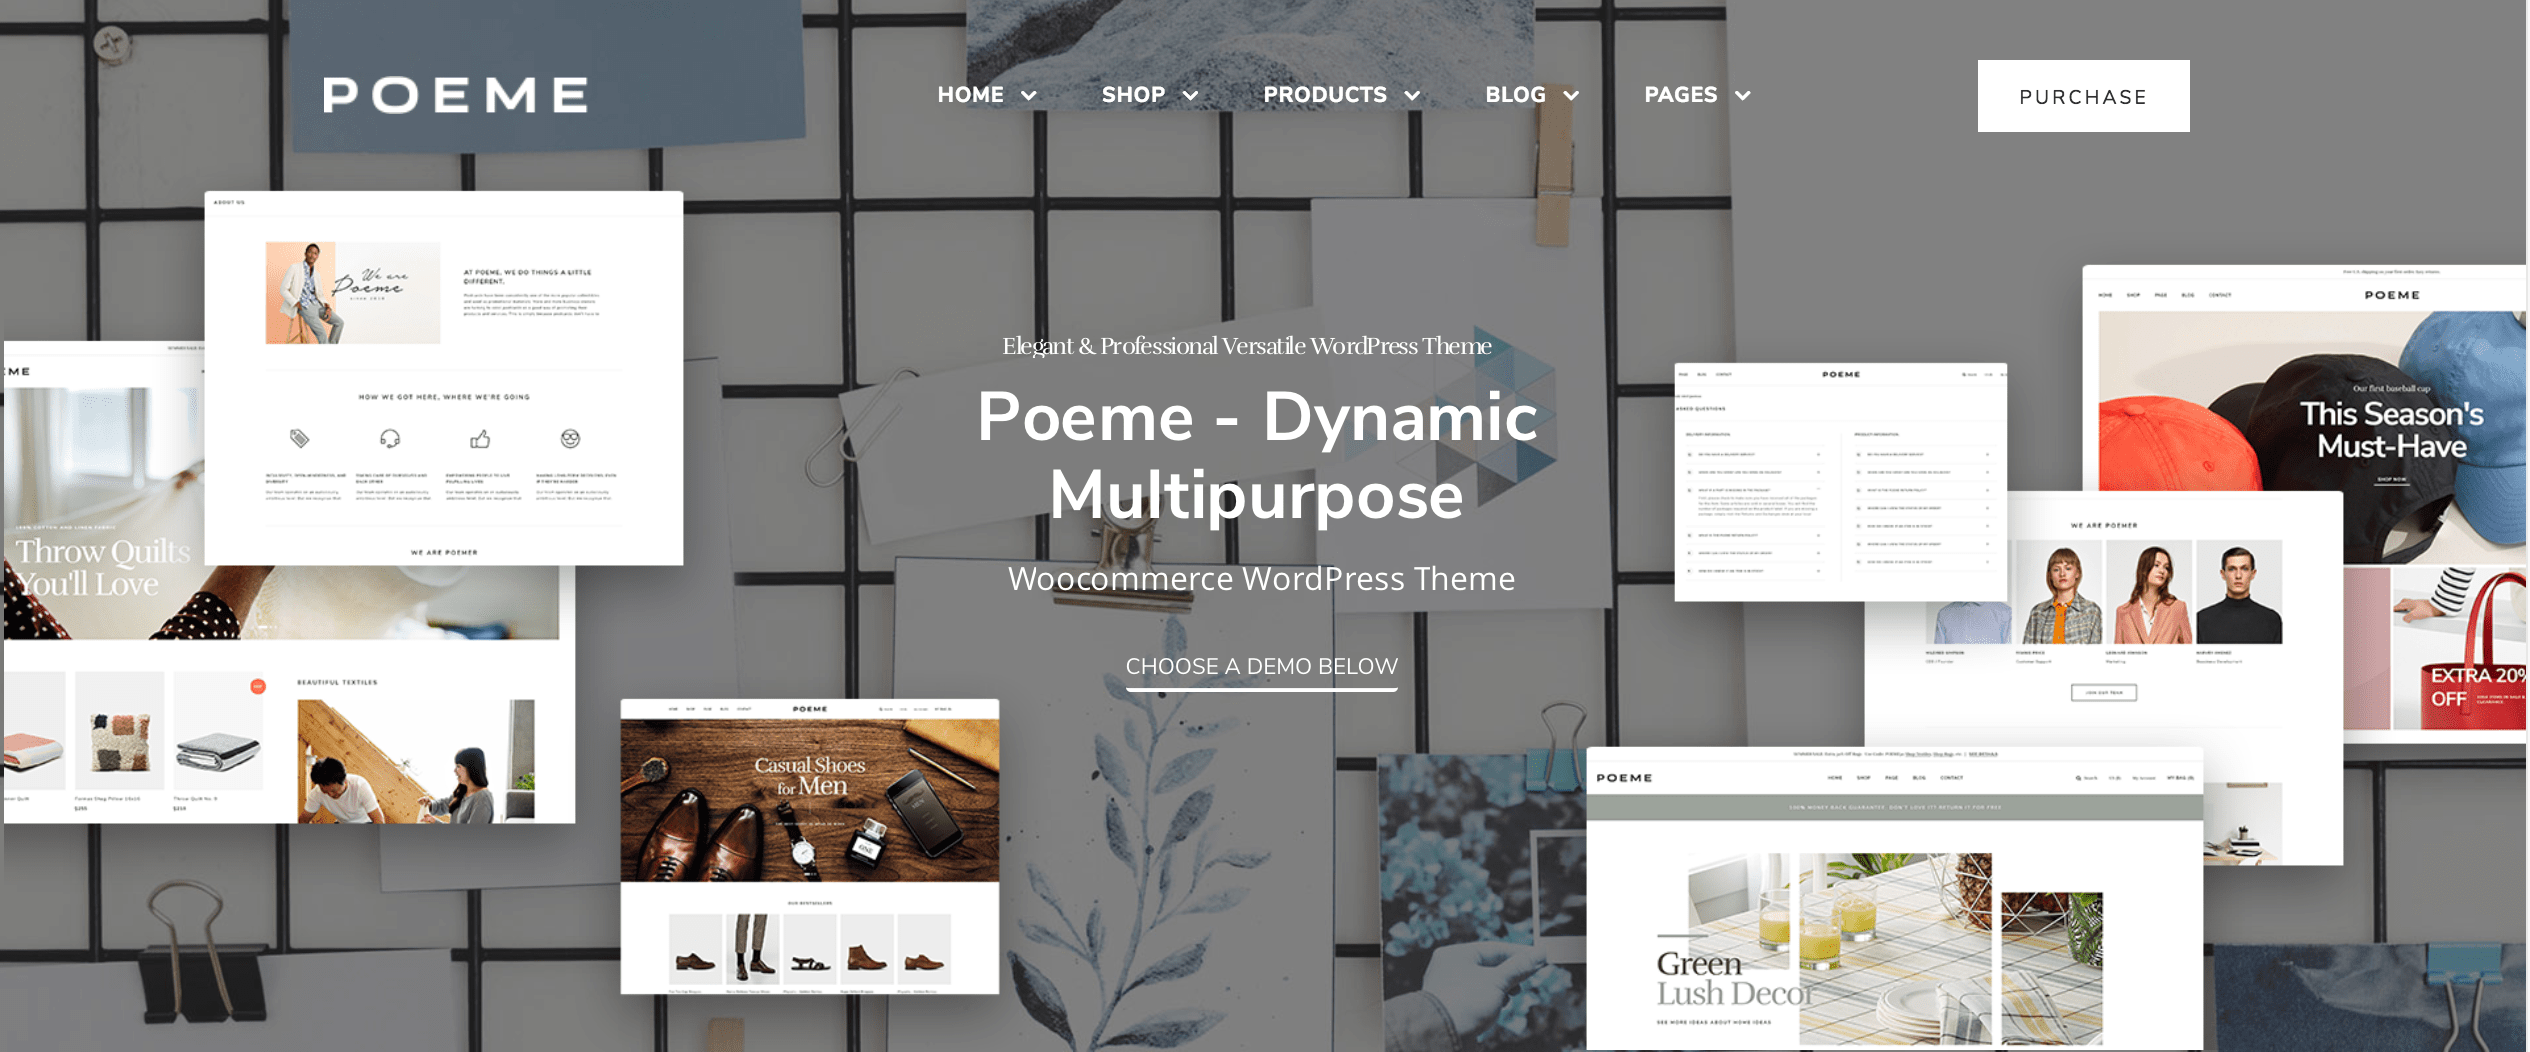 poeme multipurpose wordpress theme